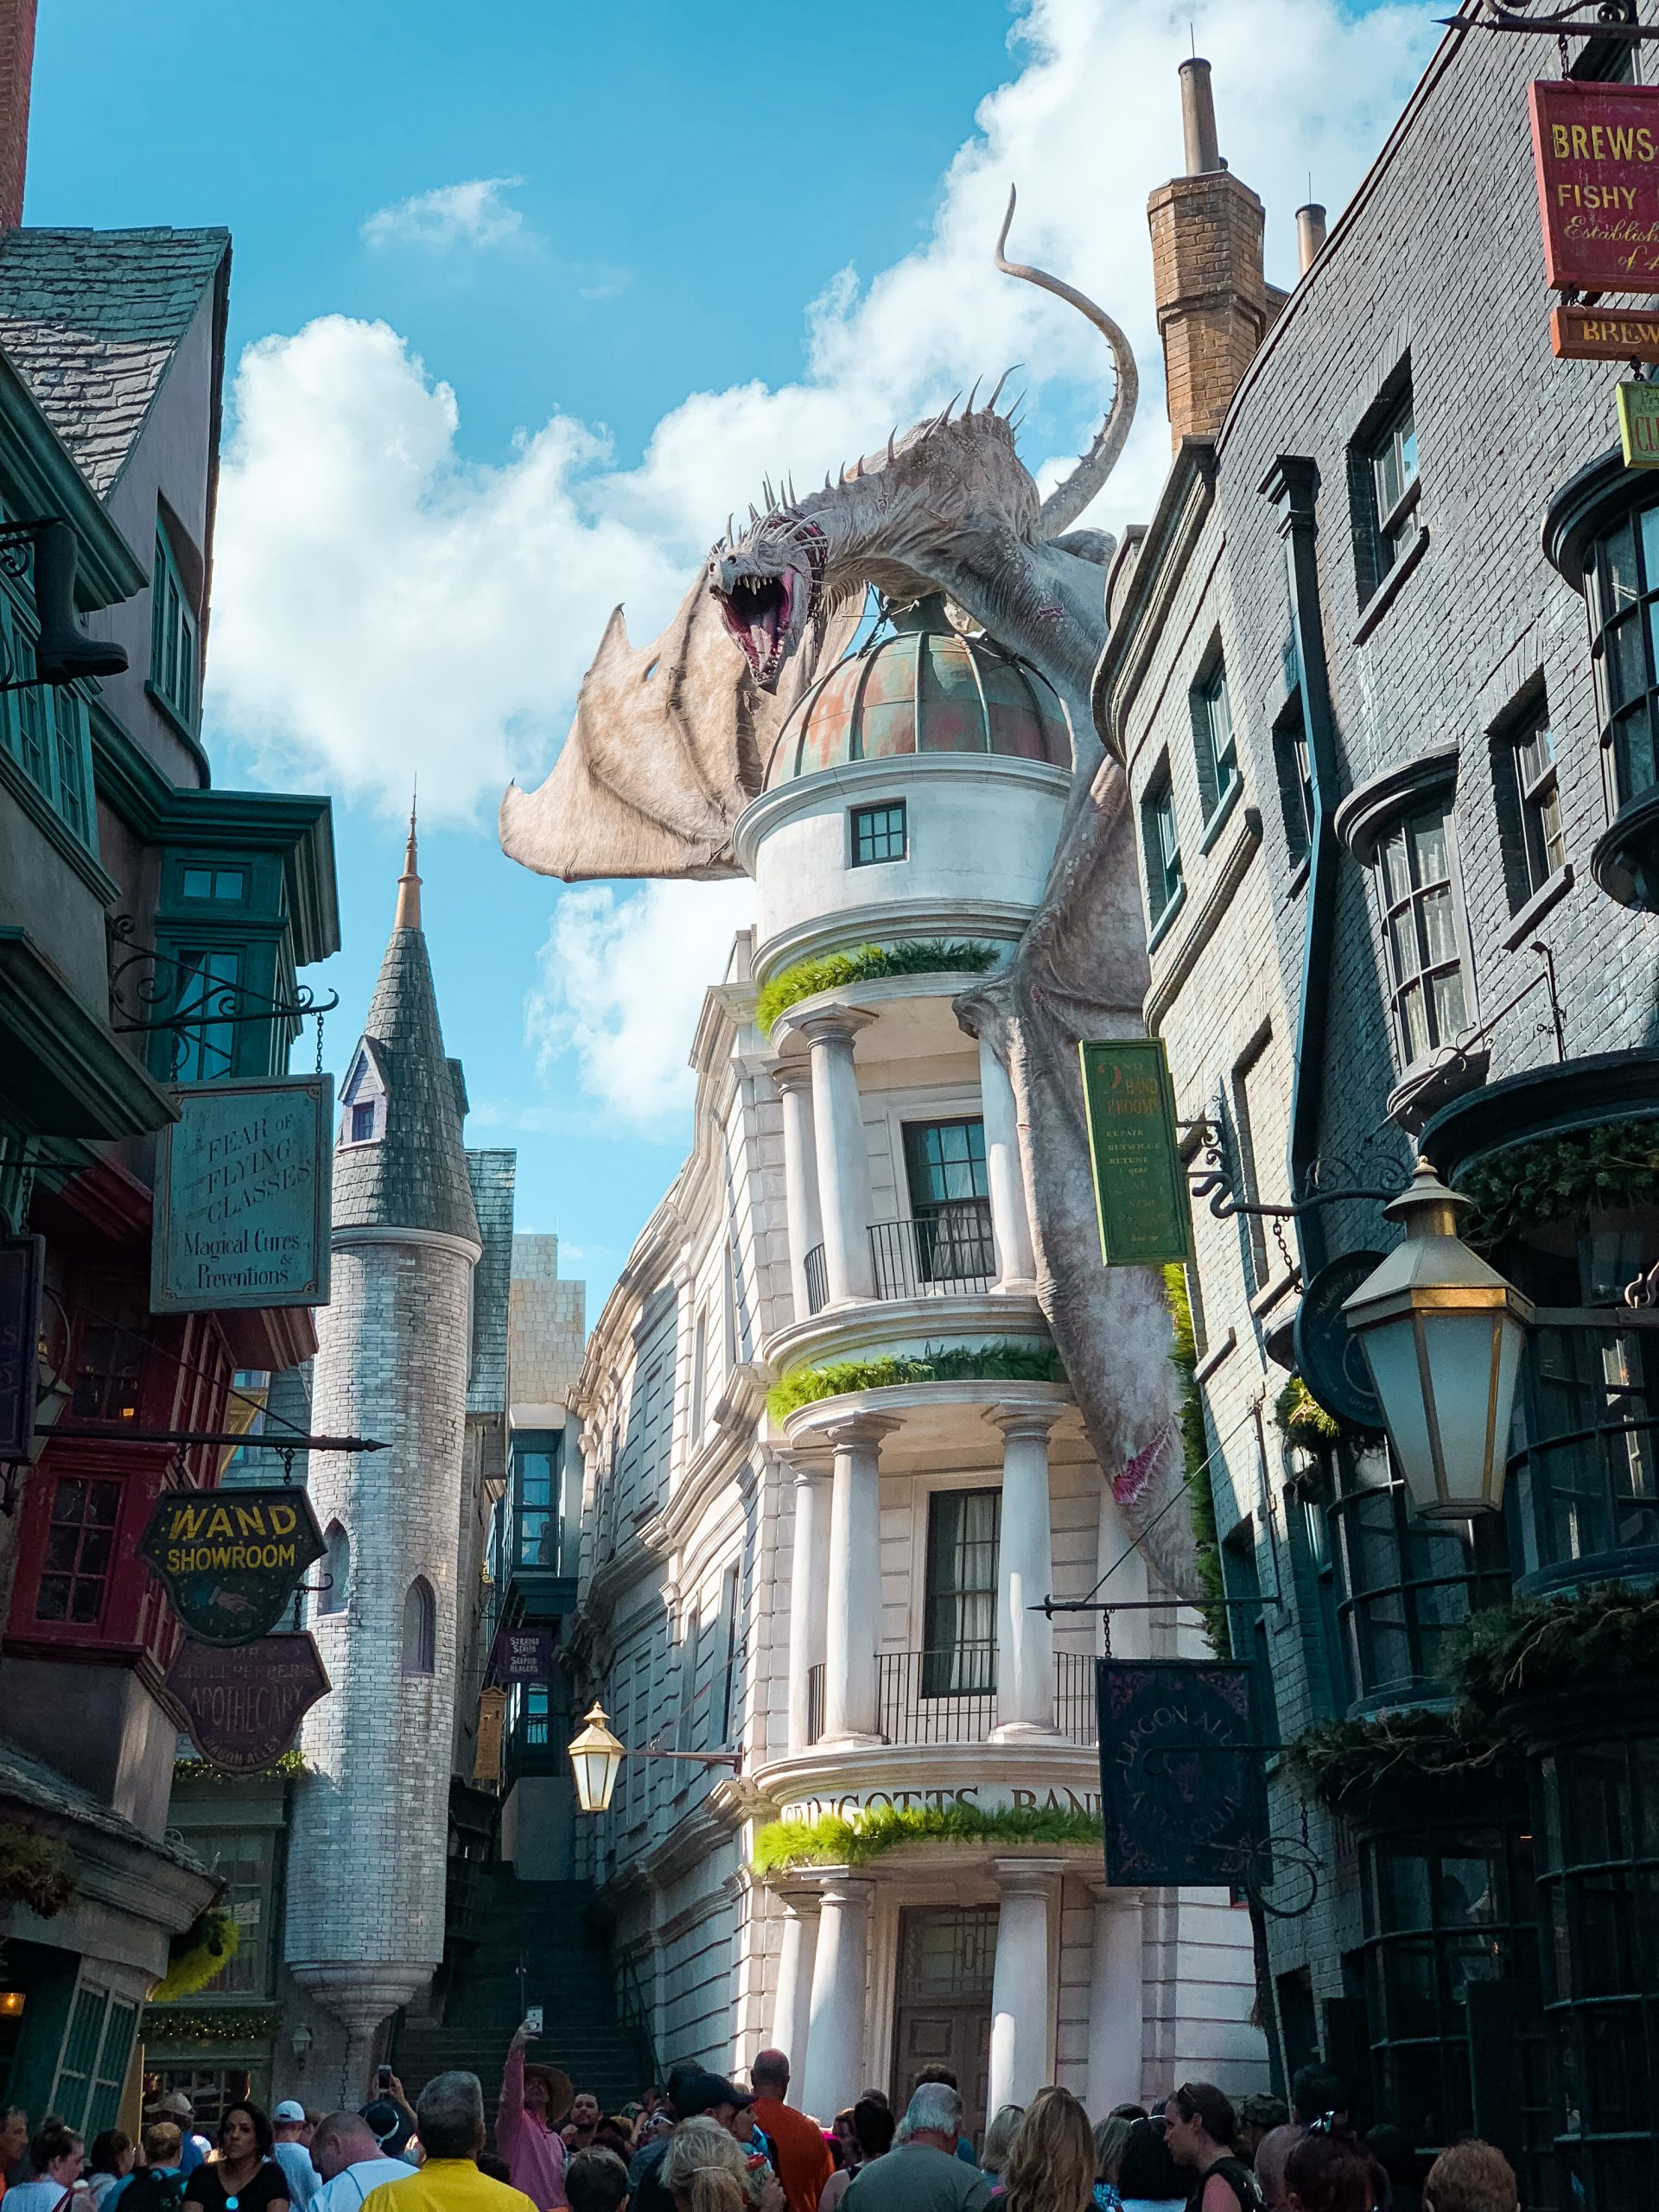 Gringotts Bank with a dragon on top at Universal Studios Orlando